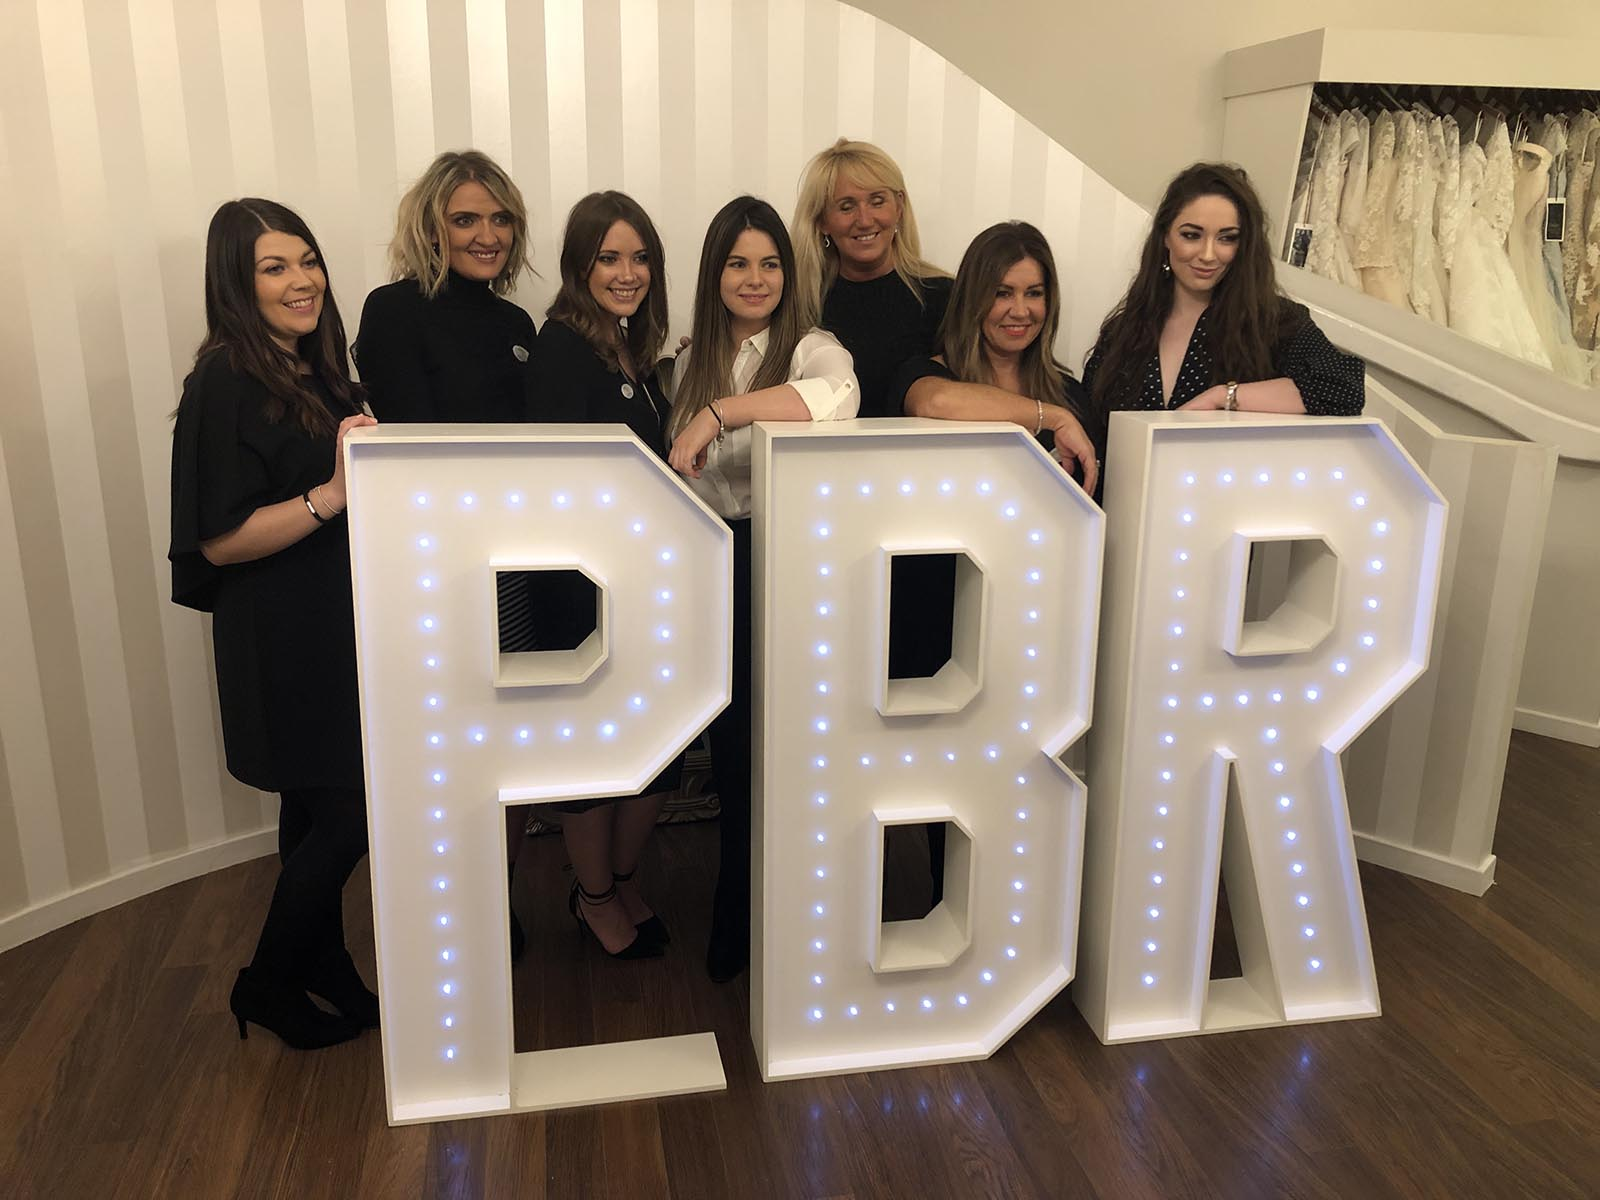 The models and staff at PBR. Giant letter hire.